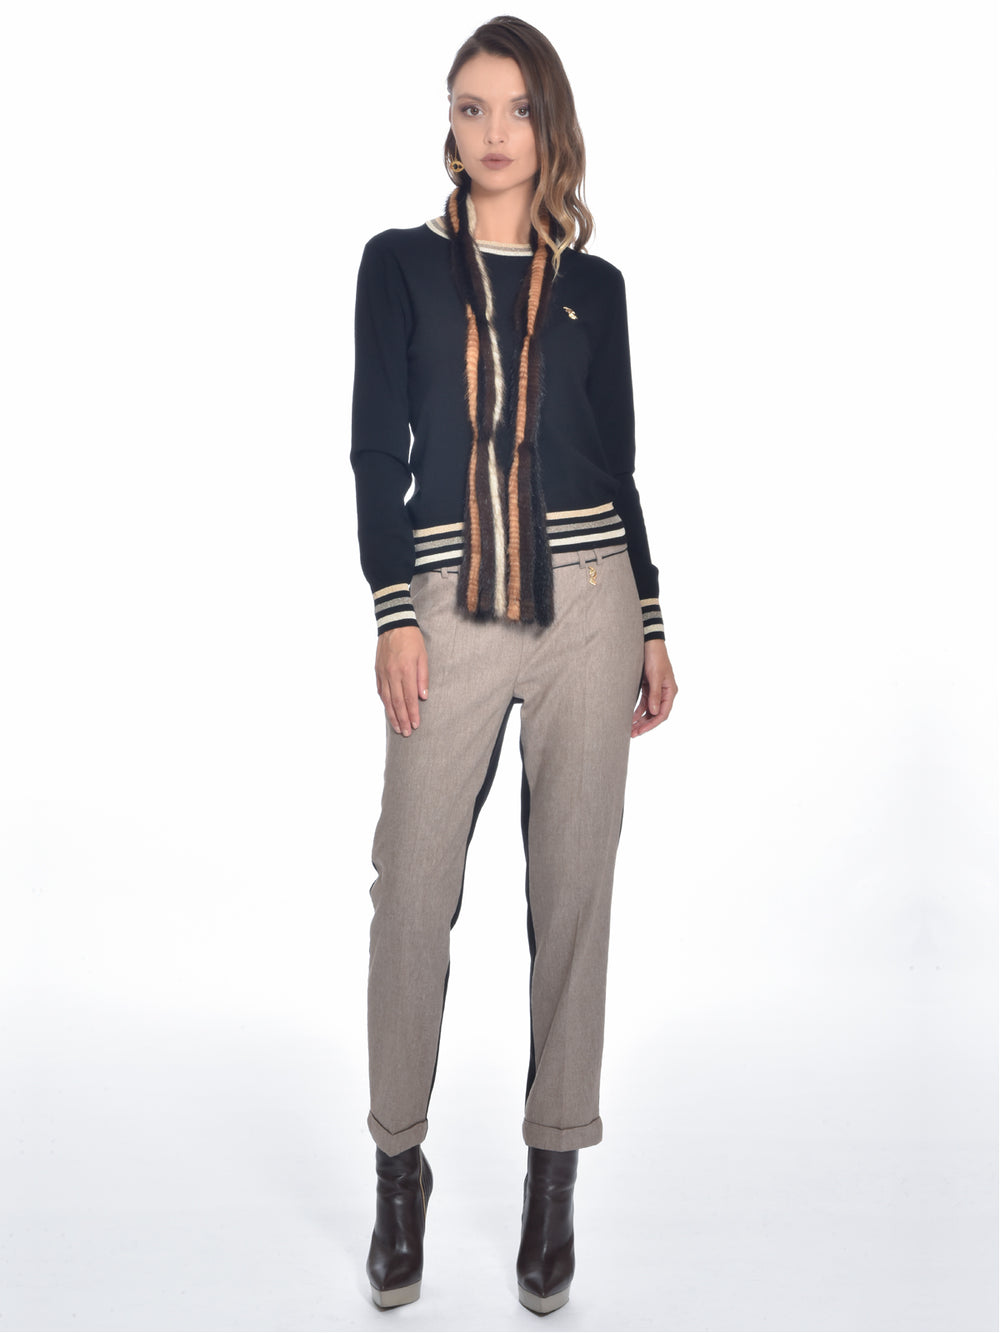 Beige and Black Block Pants, ROBERTA SCARPA - elilhaam.com